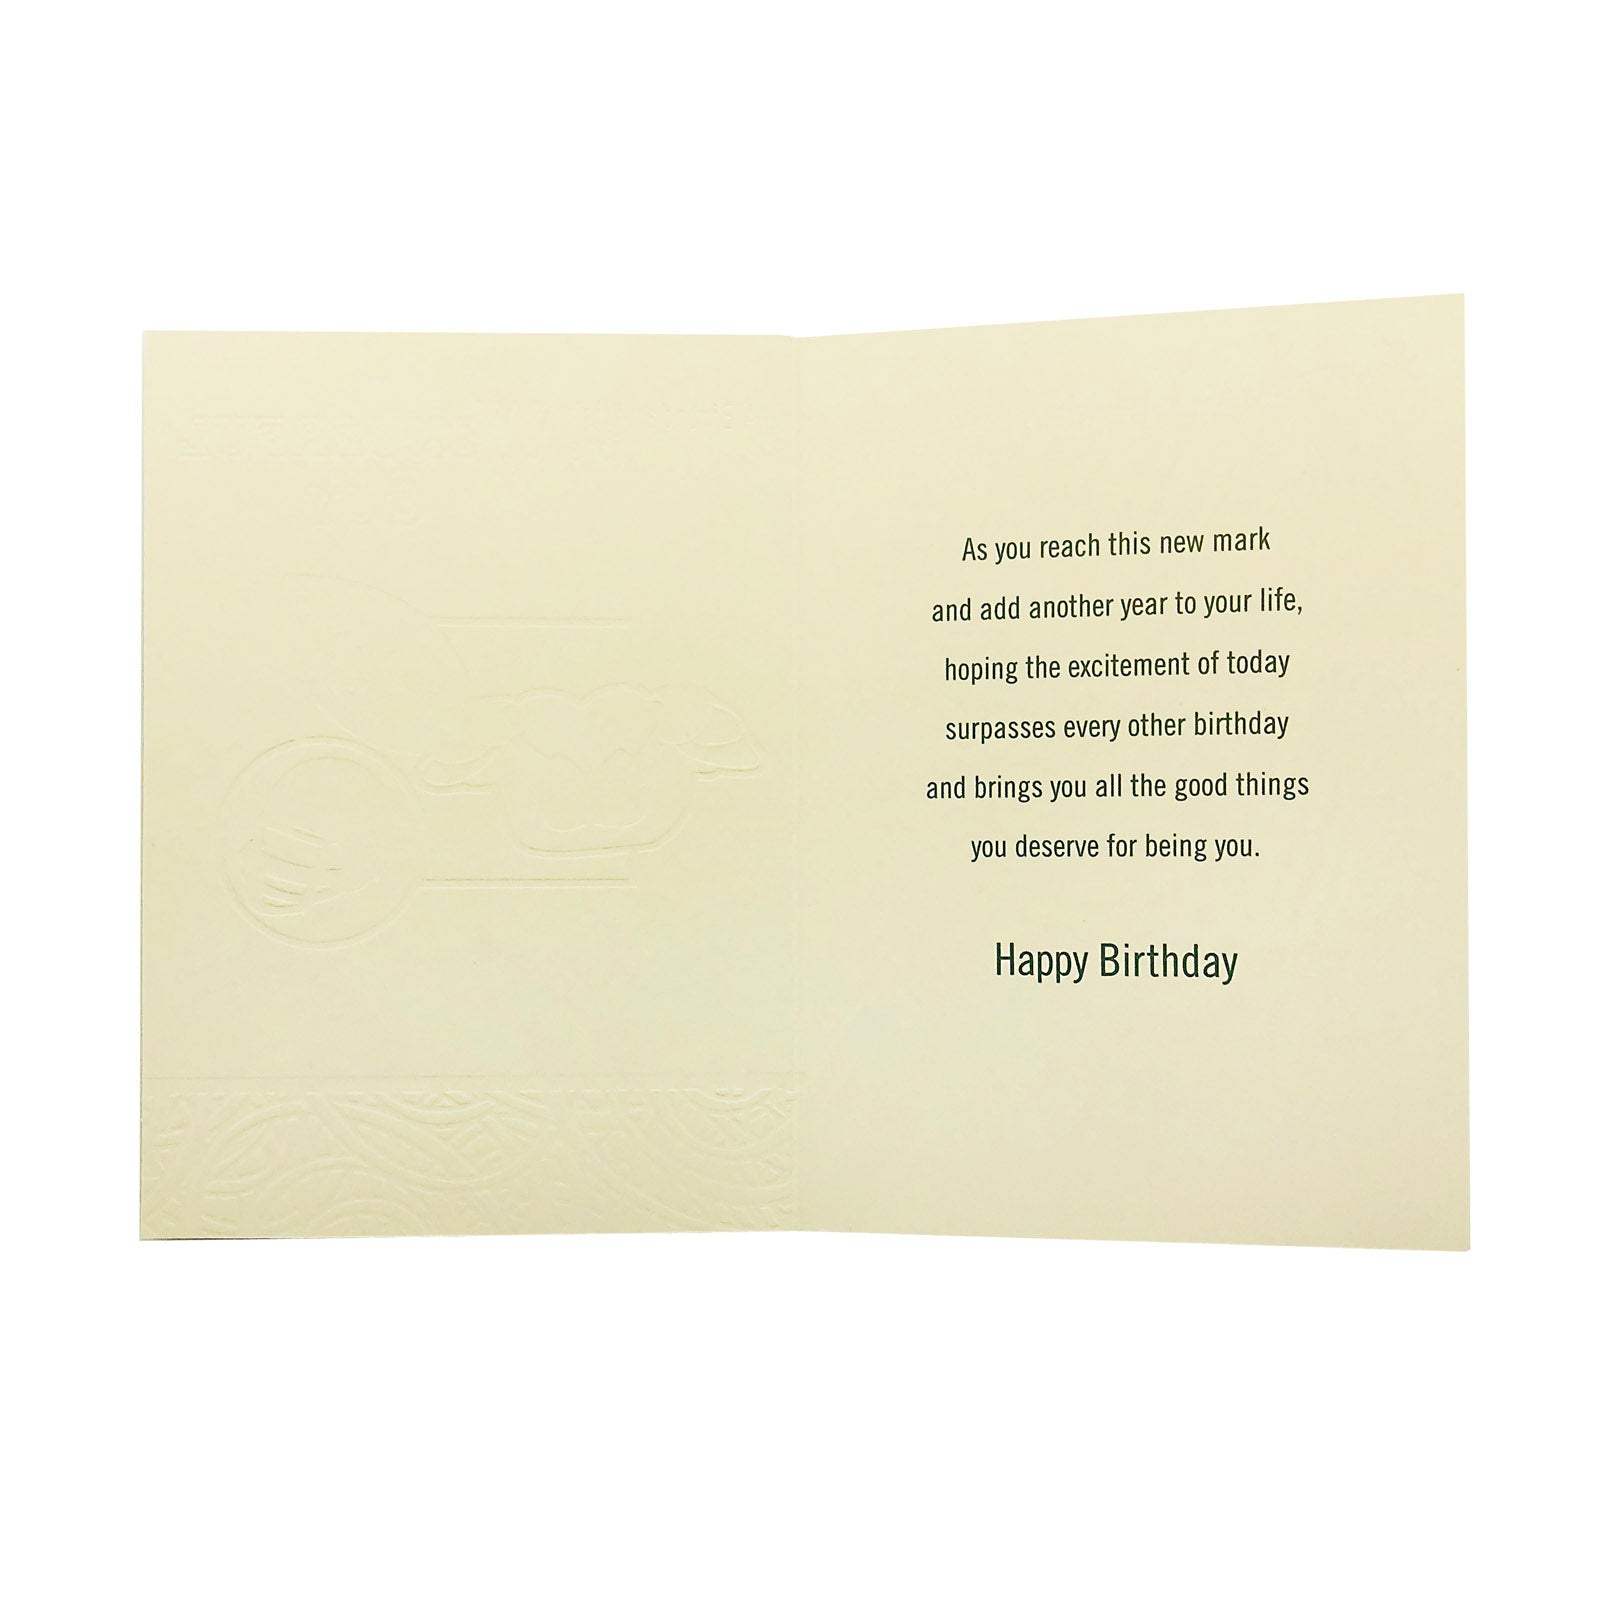 Designer Greetings Birthday Card - Birthday Wish For A Wonderful Guy